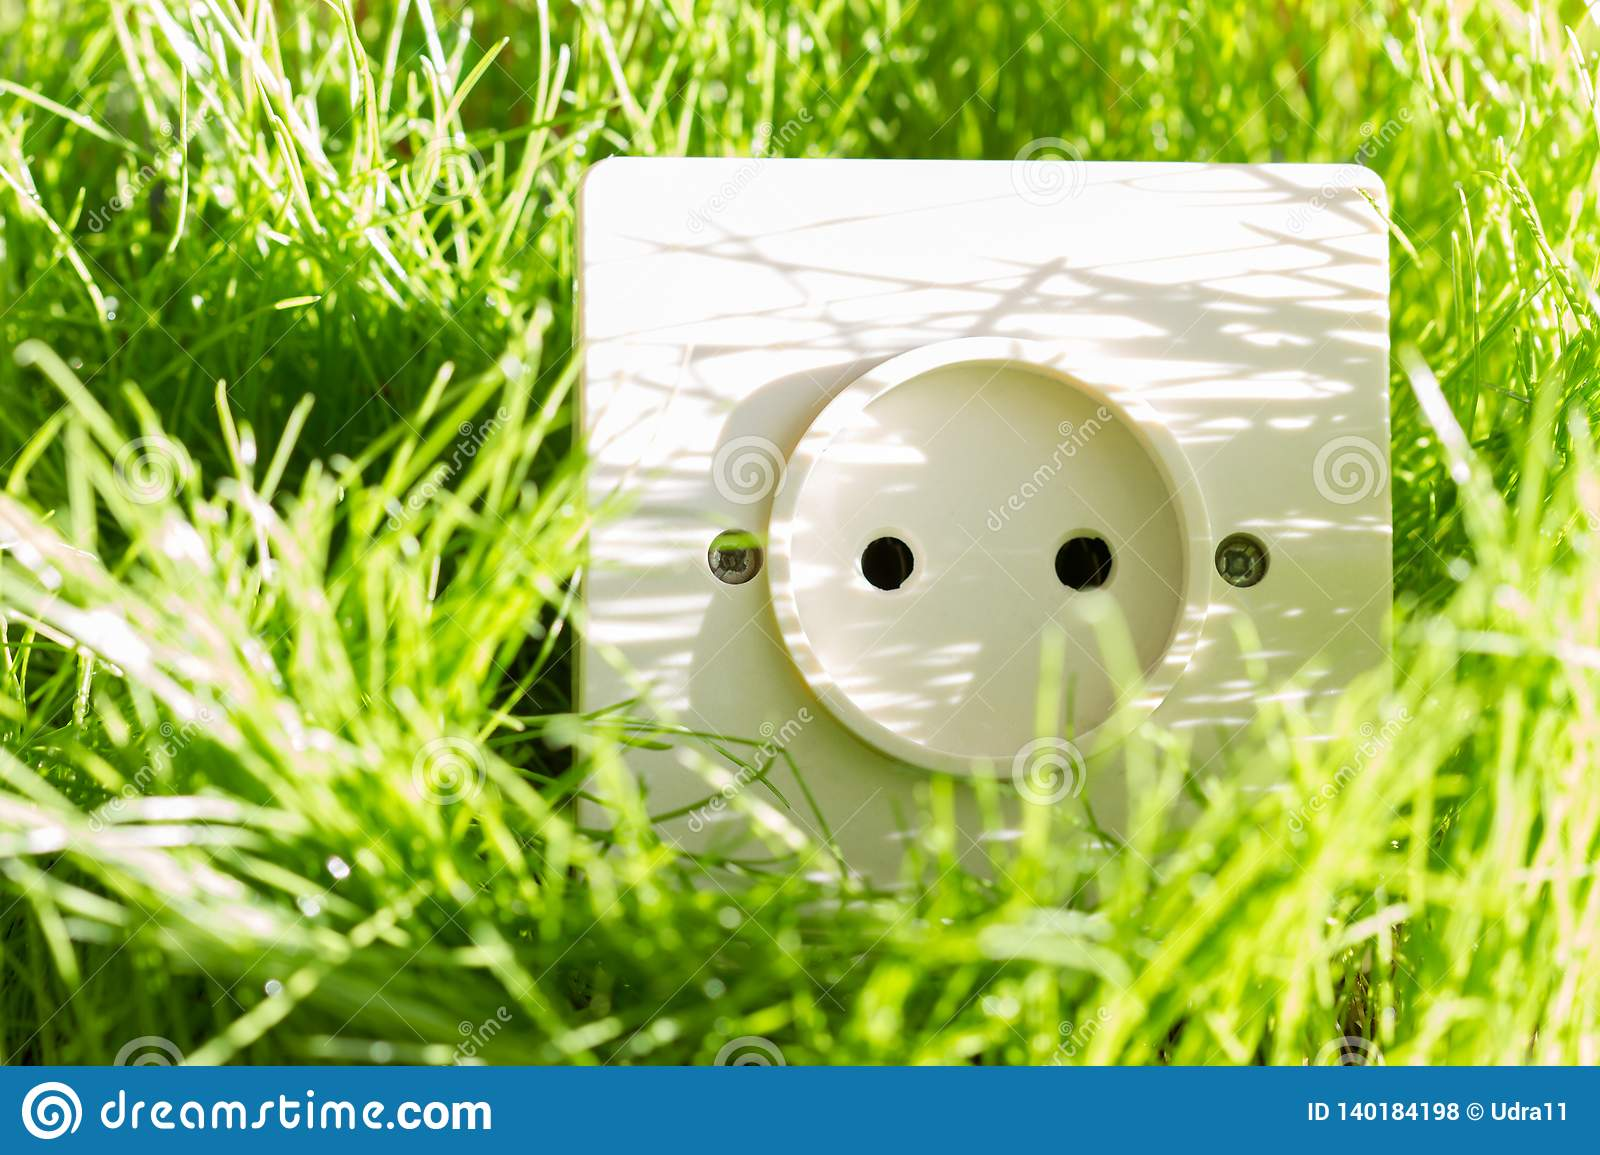 Green energy concept with socket in the grass outdoor